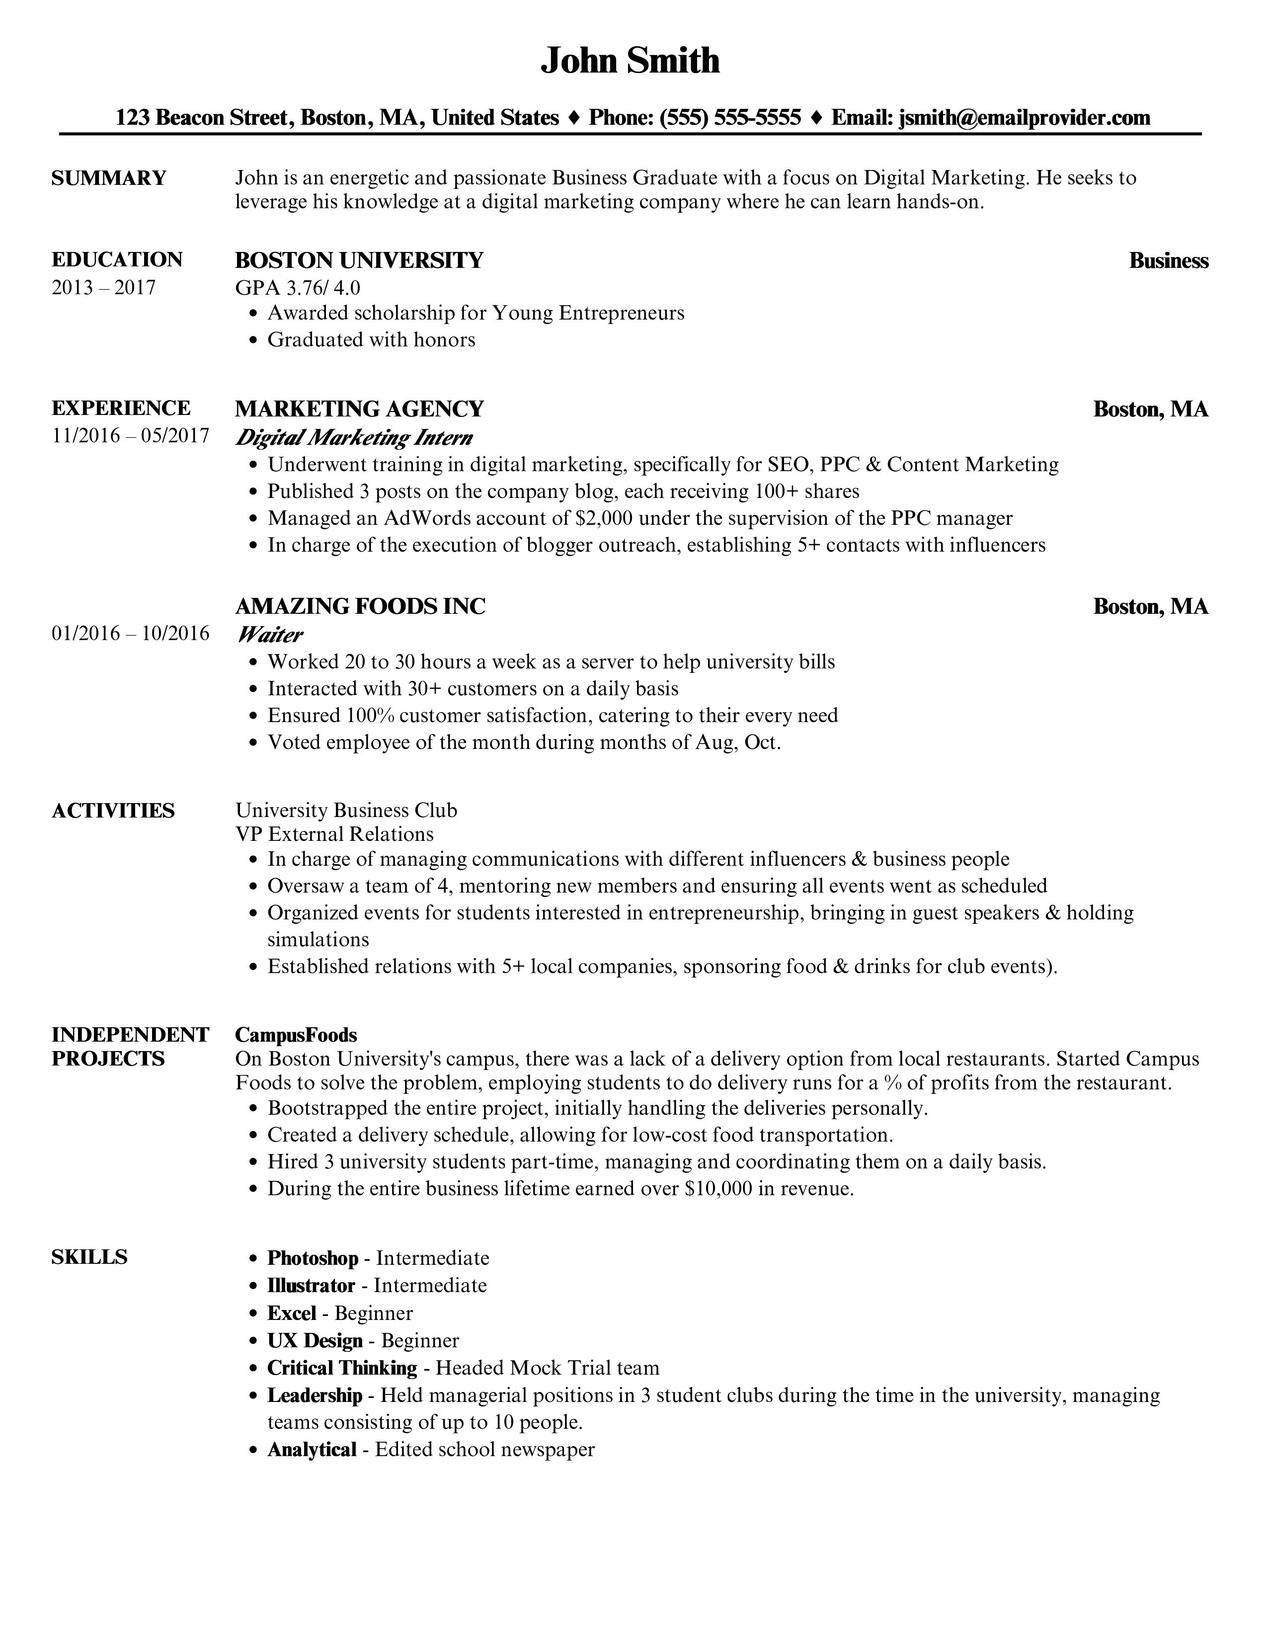 The Ultimate Guide To Writing A Student Resume Velvet Jobs